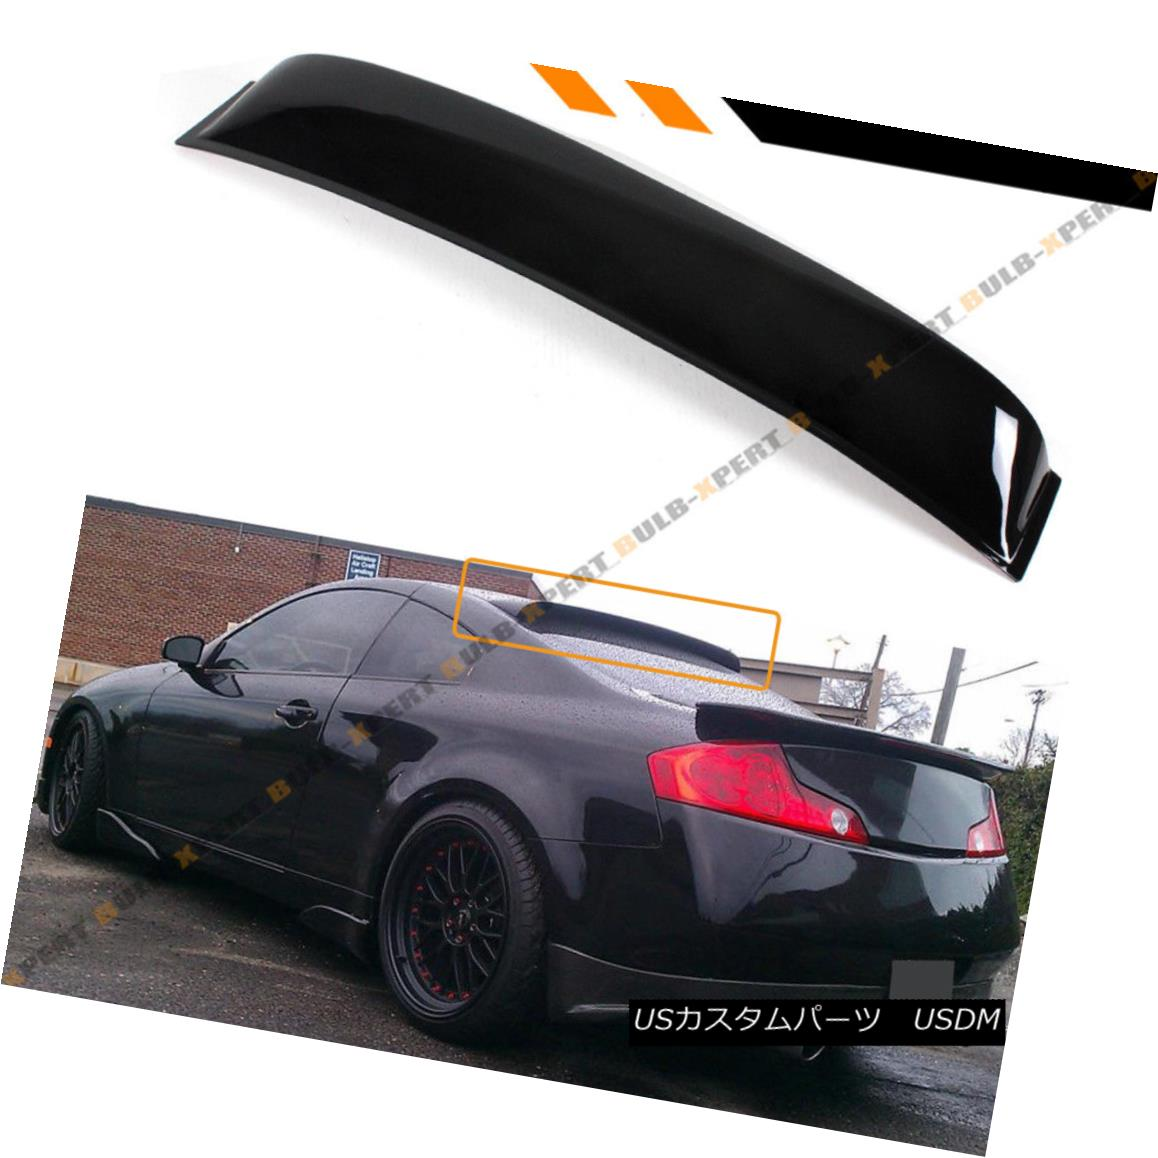 Fits for 2003-2007 Infiniti G35 2 Door Coupe JDM VIP Glossy Black Rear Window Roof Spoiler Wing